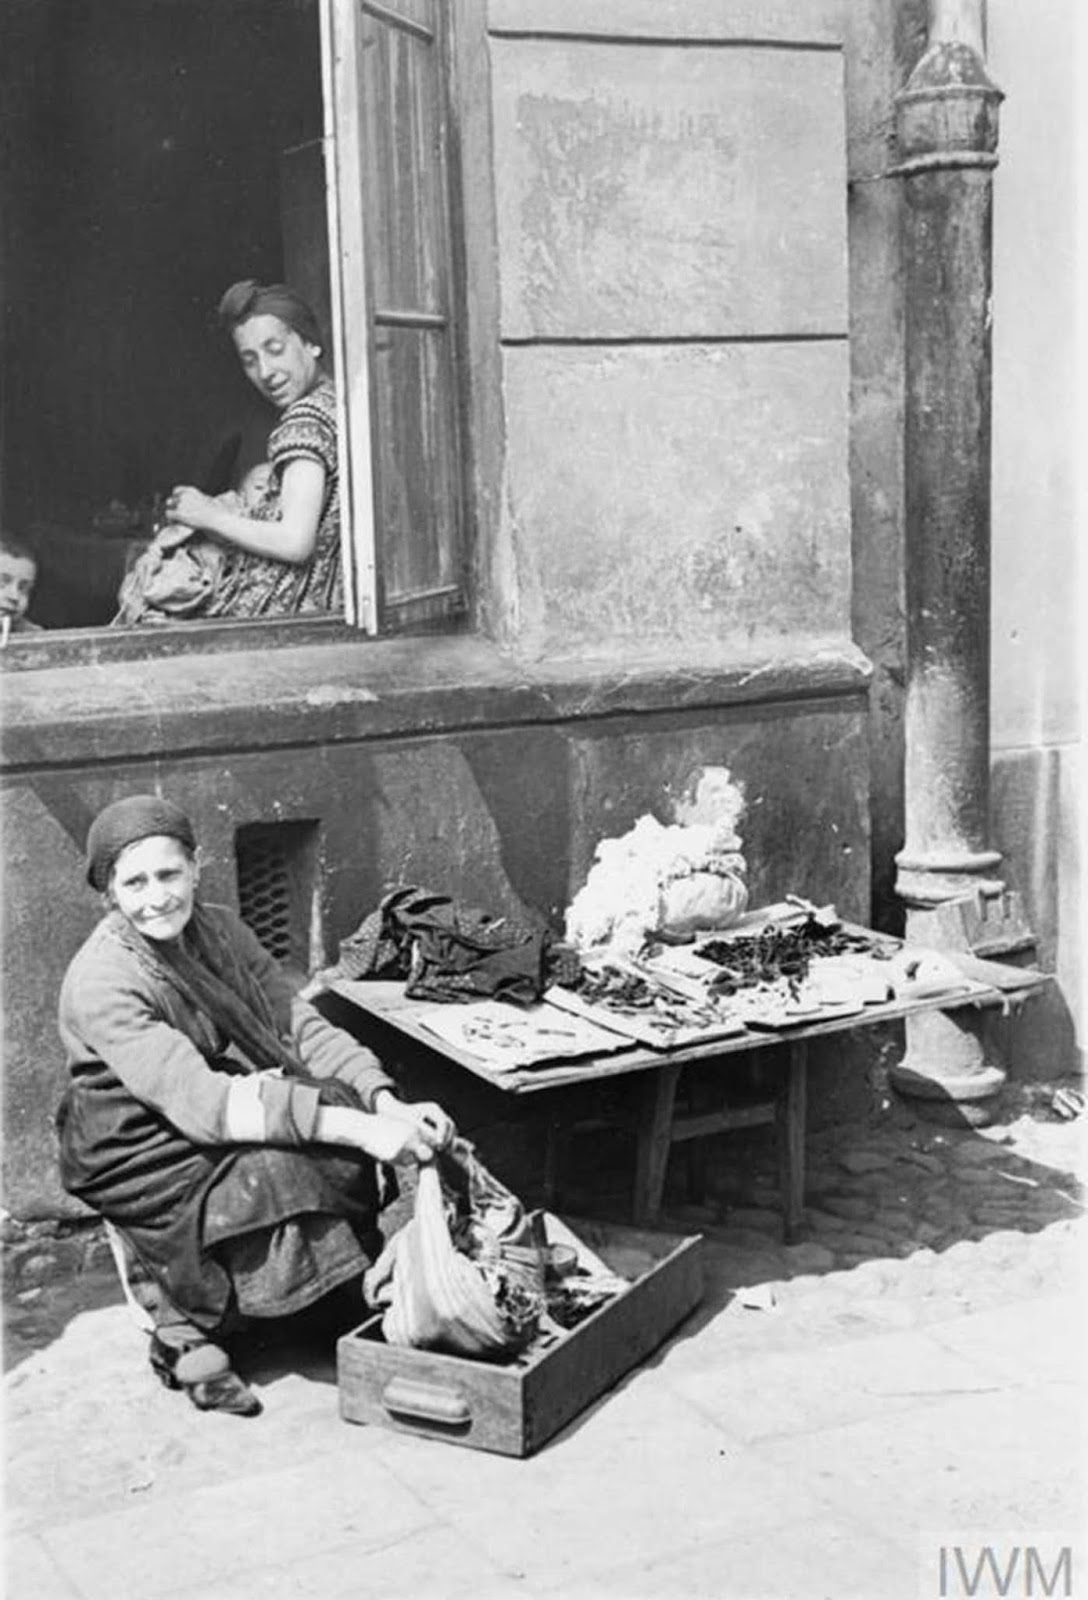 An elderly Jewish woman selling her scarce possessions in the street of the ghetto.